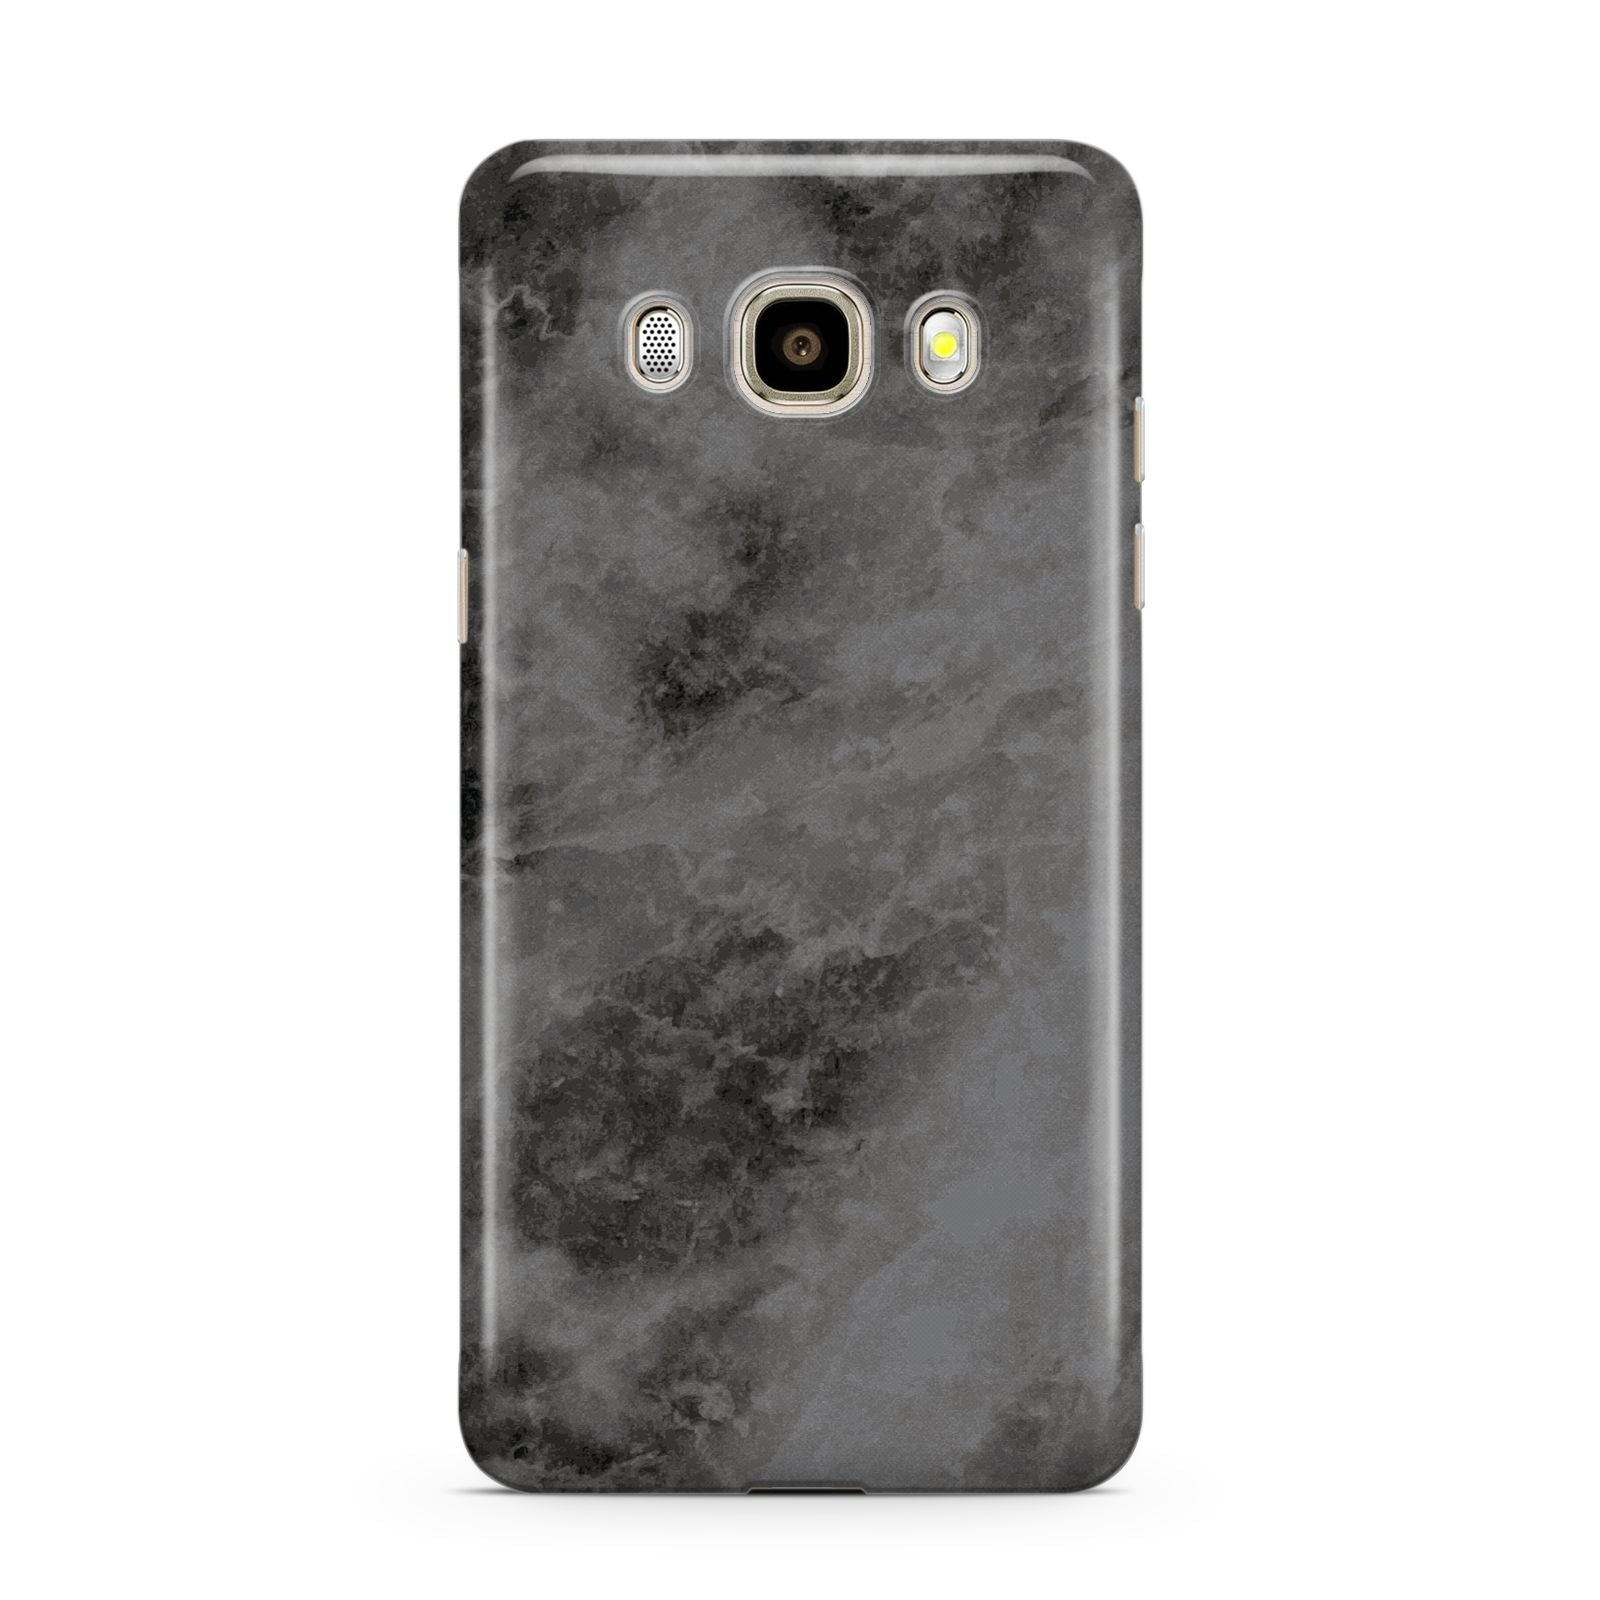 Faux Marble Grey Black Samsung Galaxy J7 2016 Case on gold phone